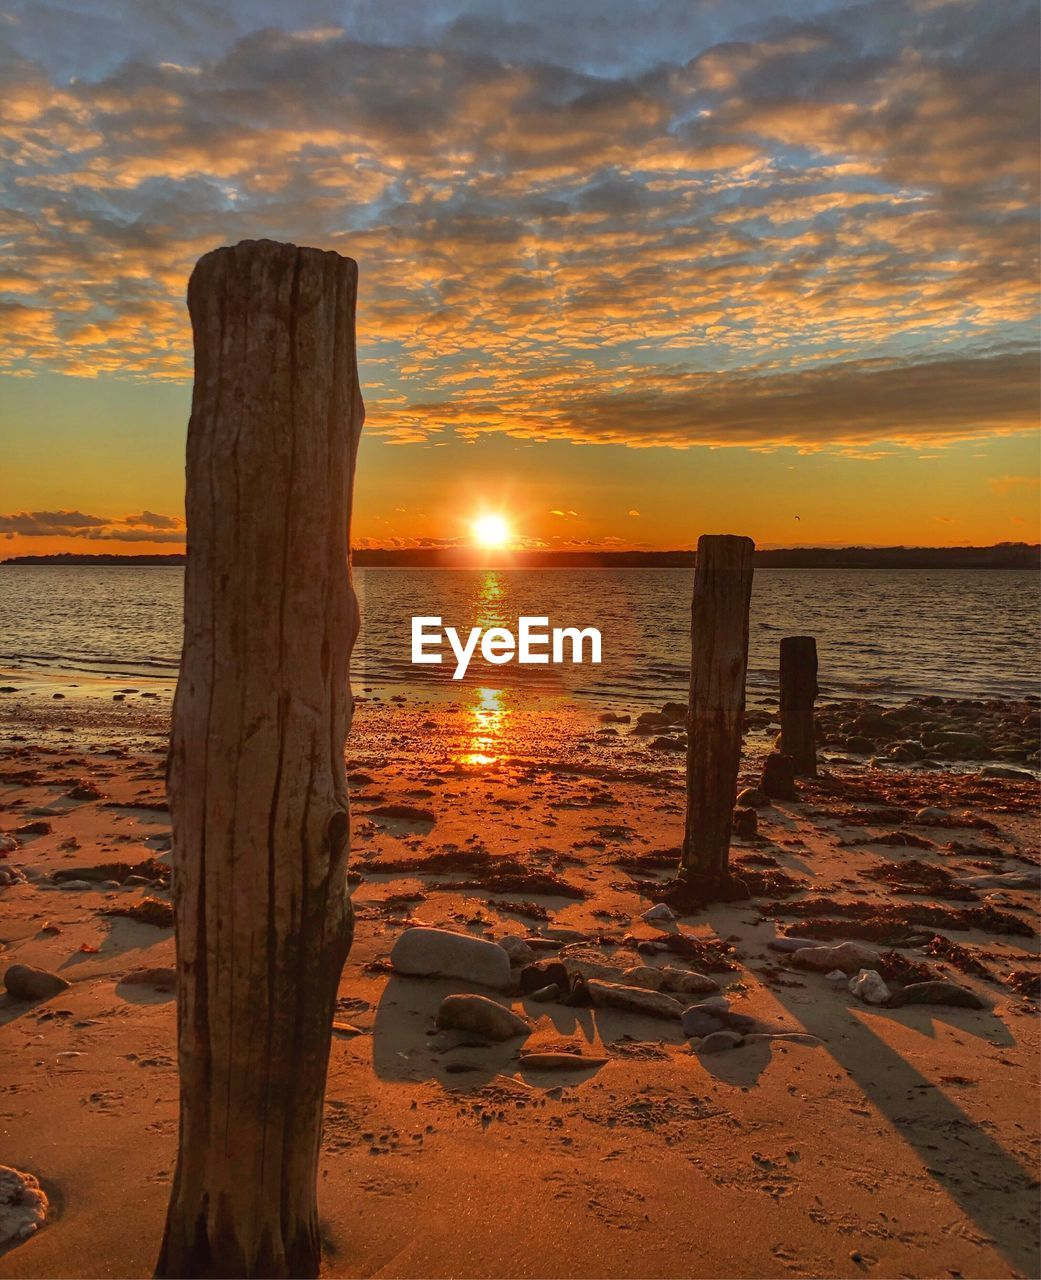 sunset, sky, water, beach, sea, beauty in nature, land, scenics - nature, cloud - sky, tranquility, tranquil scene, orange color, wood - material, nature, post, no people, horizon, idyllic, horizon over water, sun, wooden post, outdoors